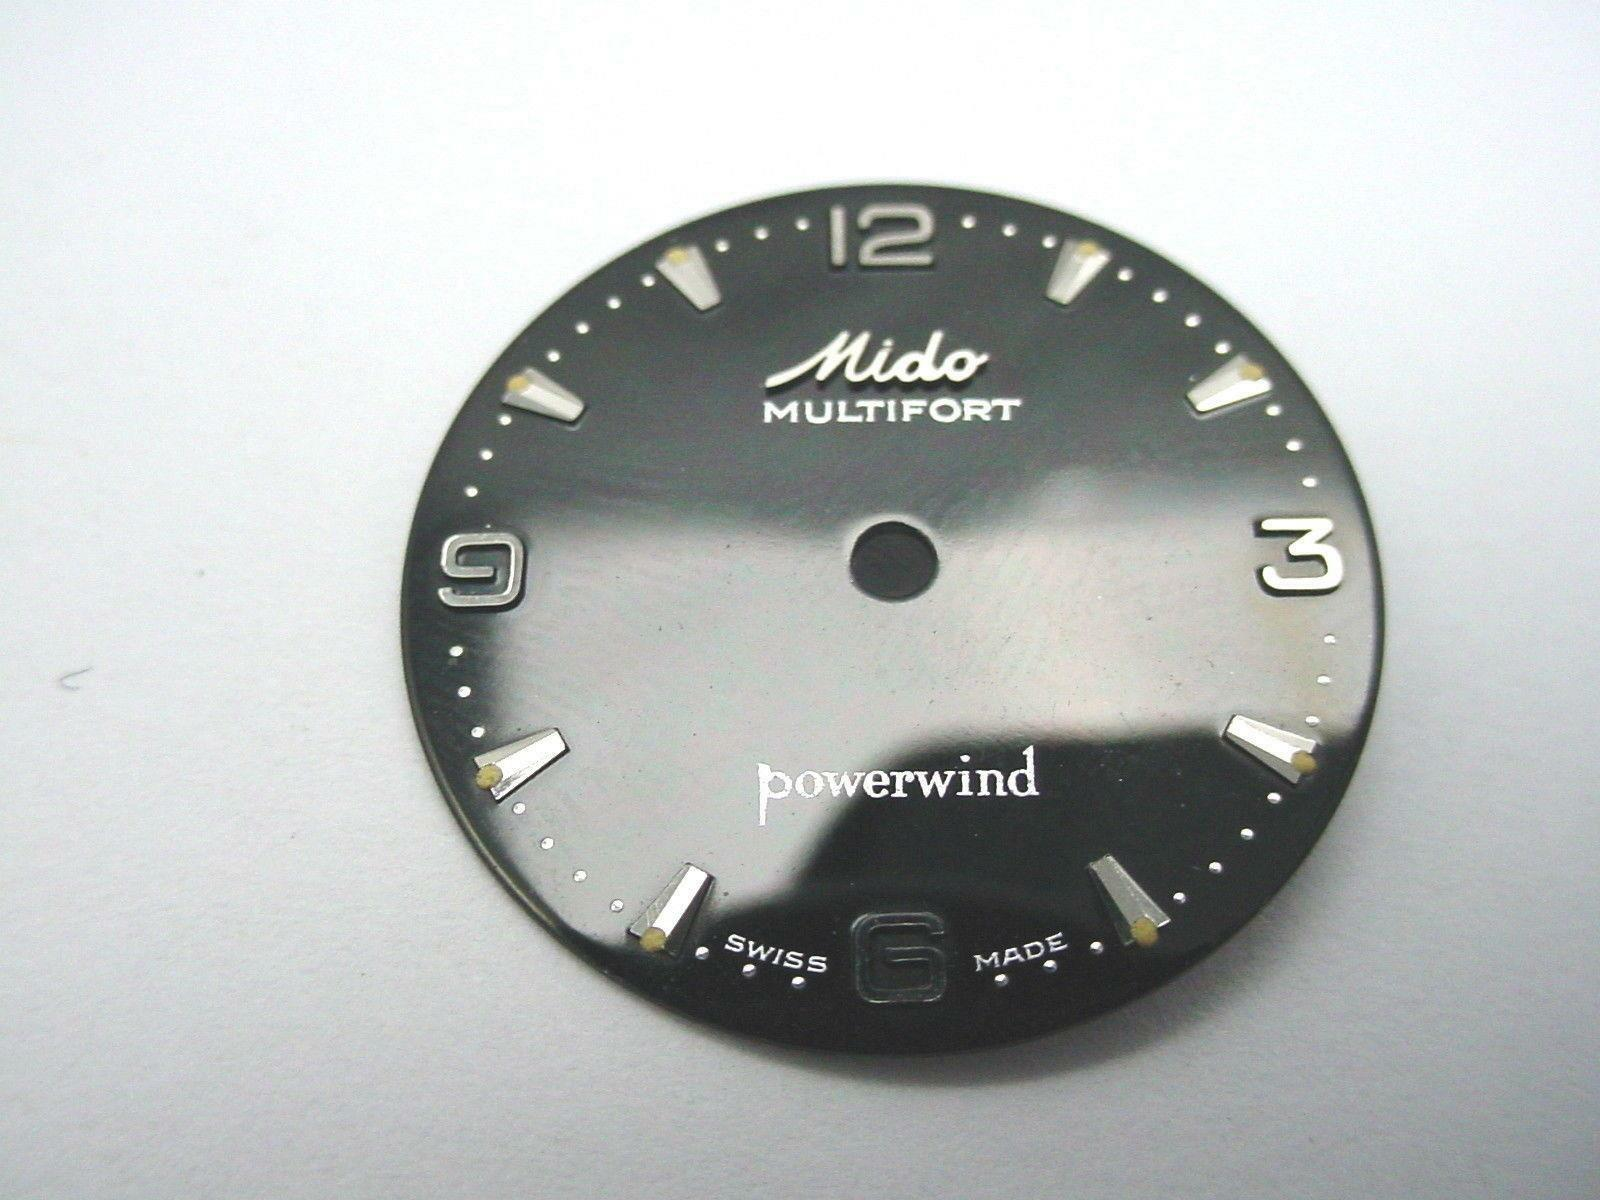 23.76mm Black Mido Powerwind Multifort Vintage Watch Dial Silve Arrow Markers